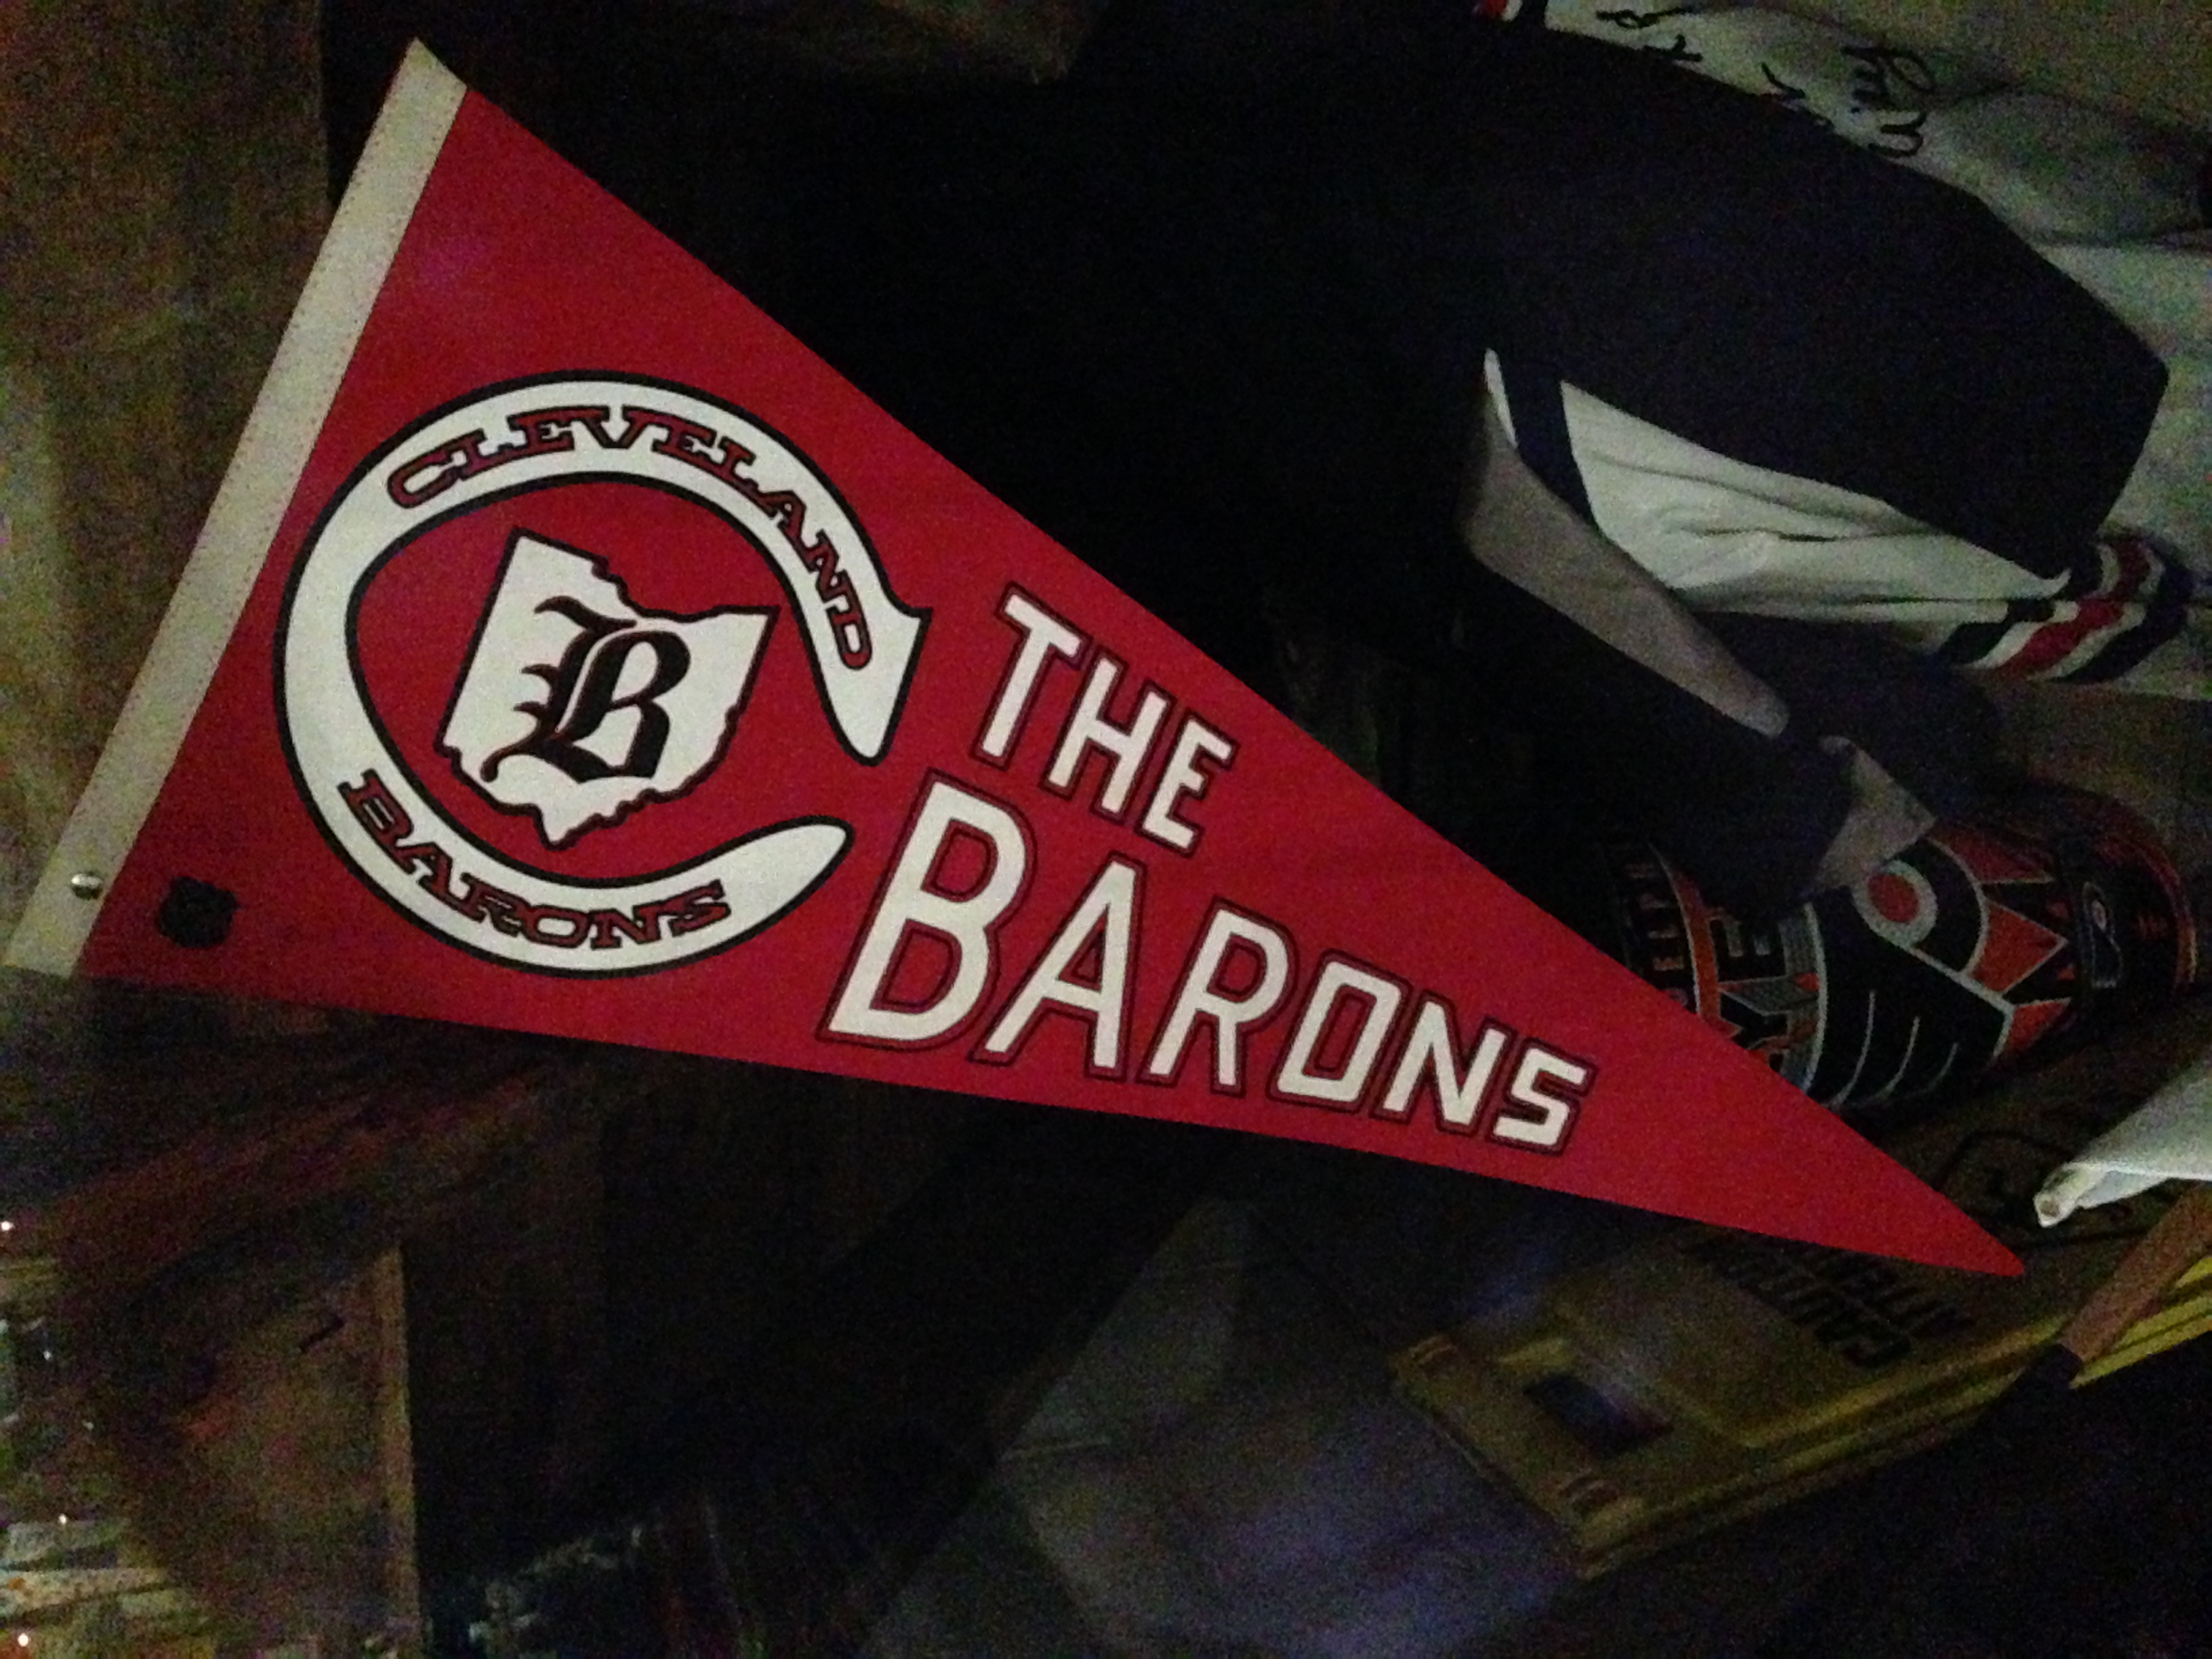 Cleveland Barons pennant